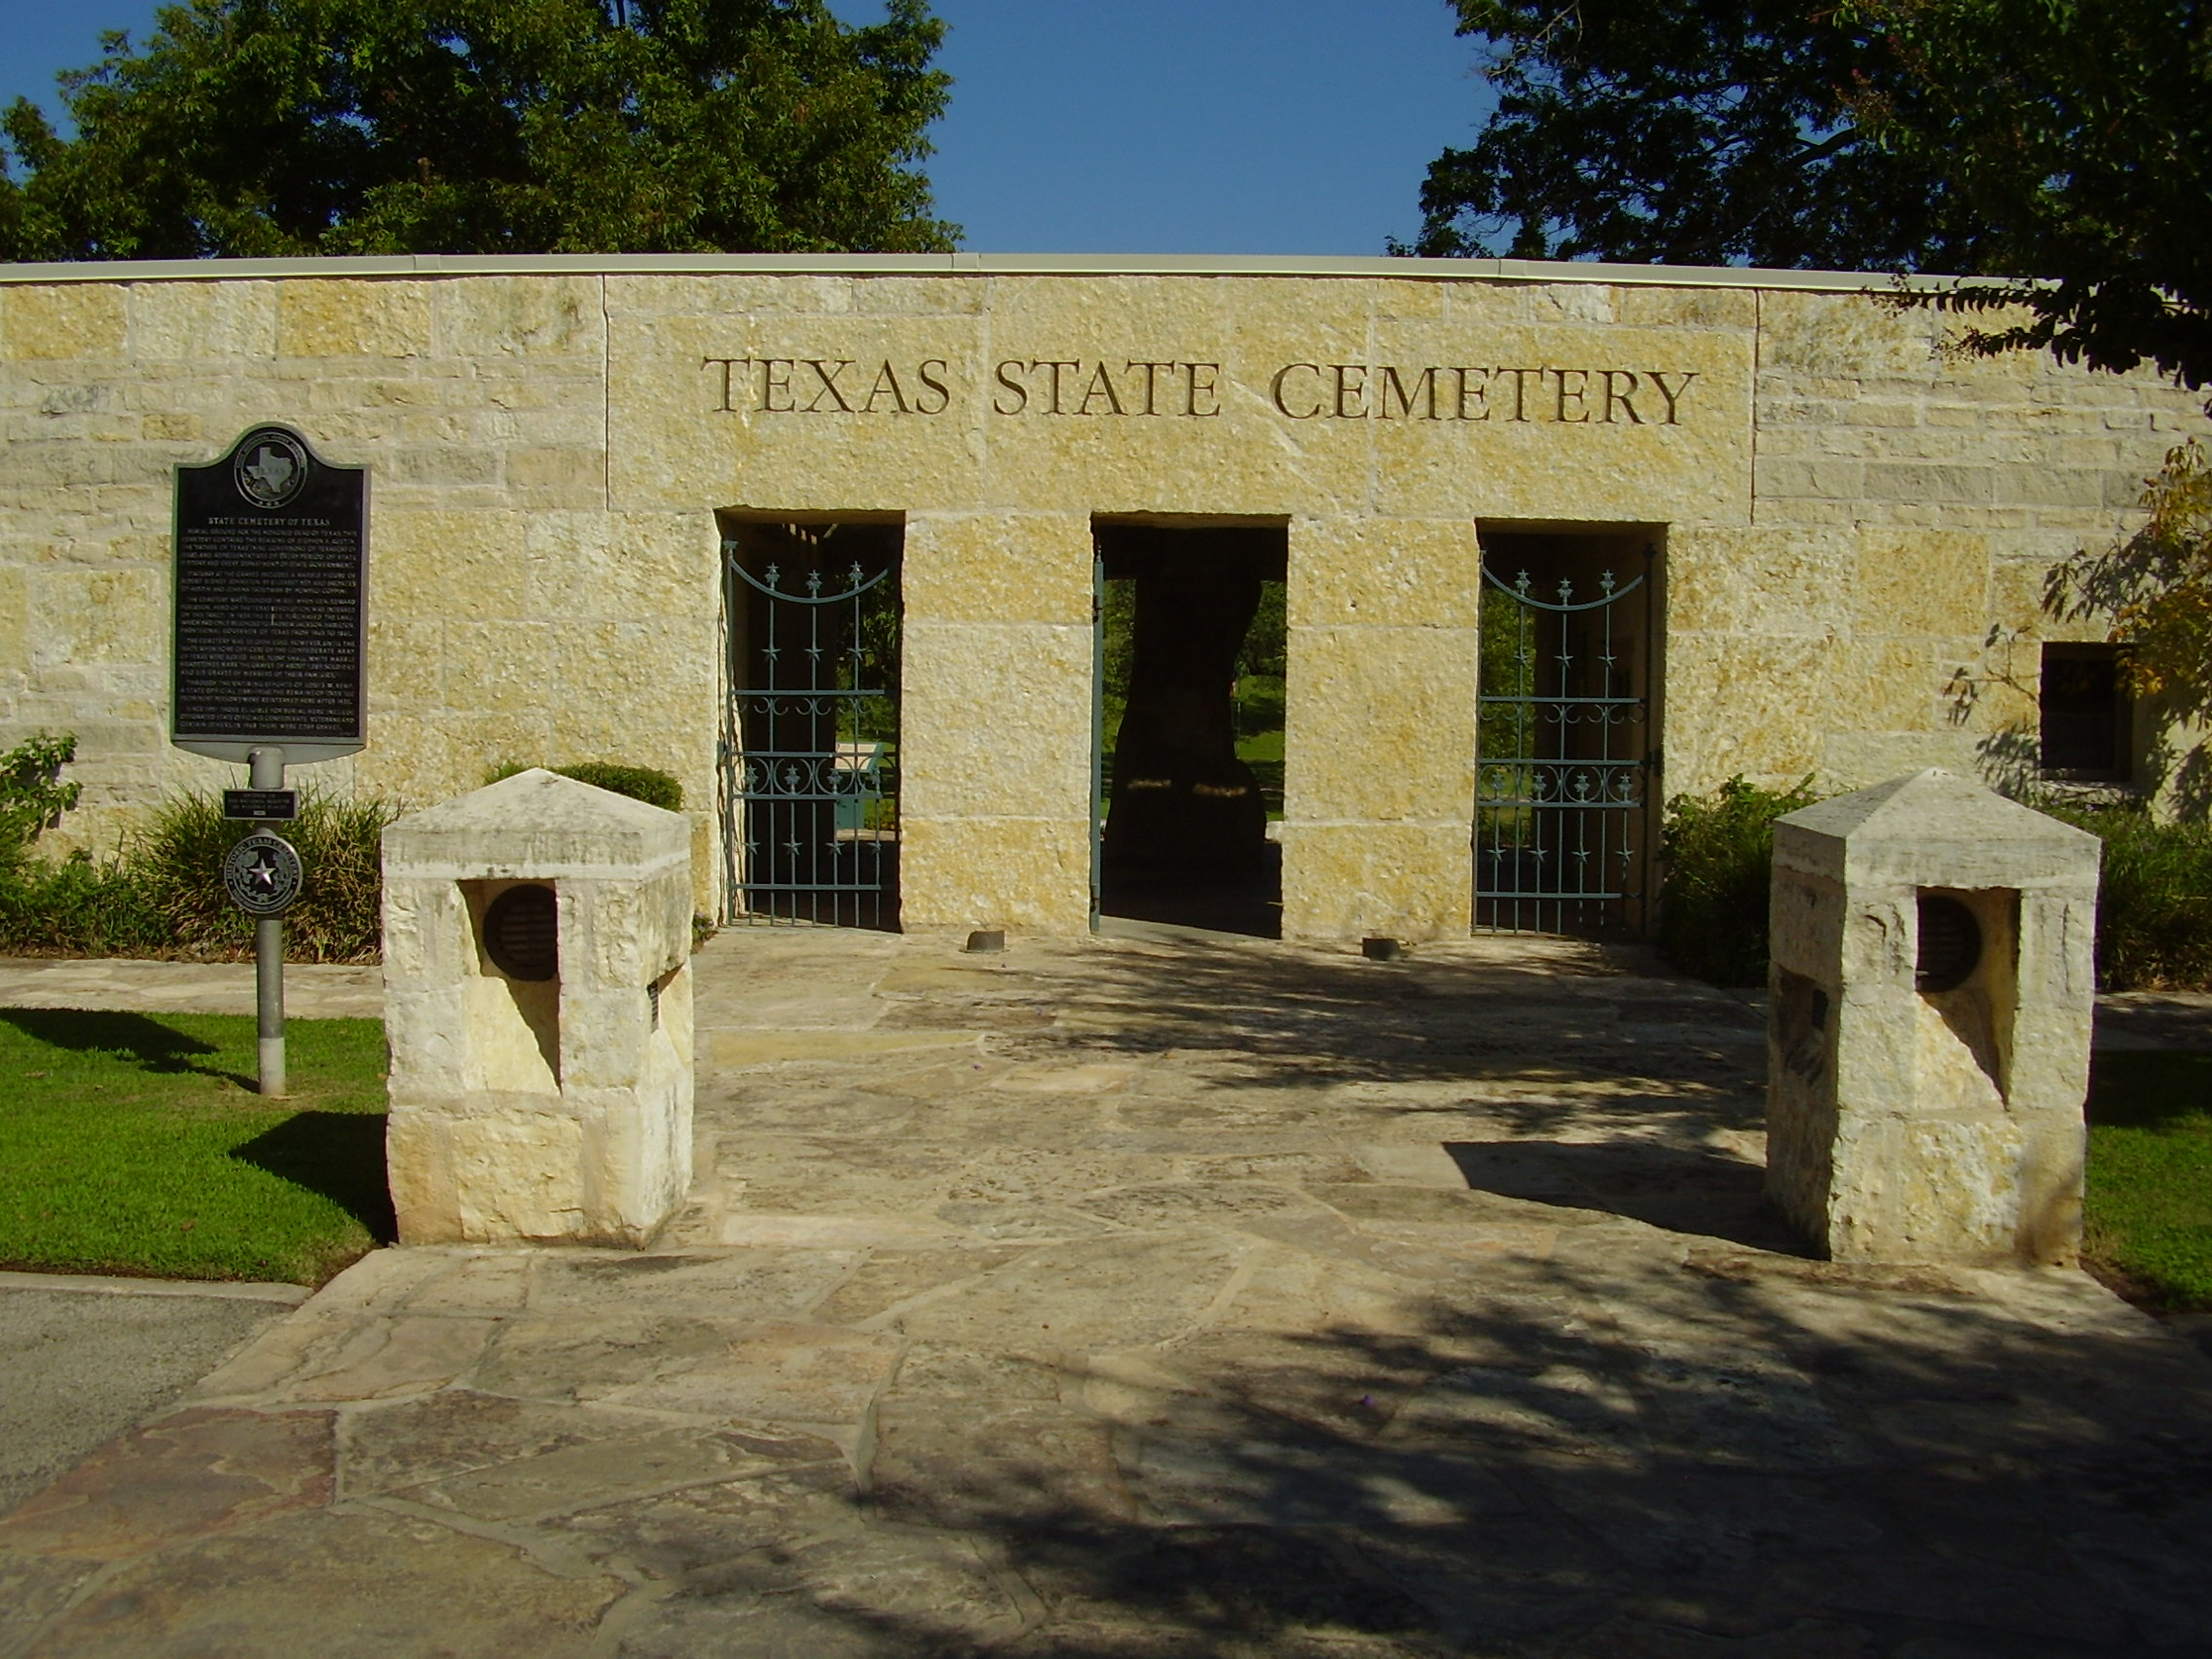 d39d98c5b085 Texas State Cemetery - Wikipedia